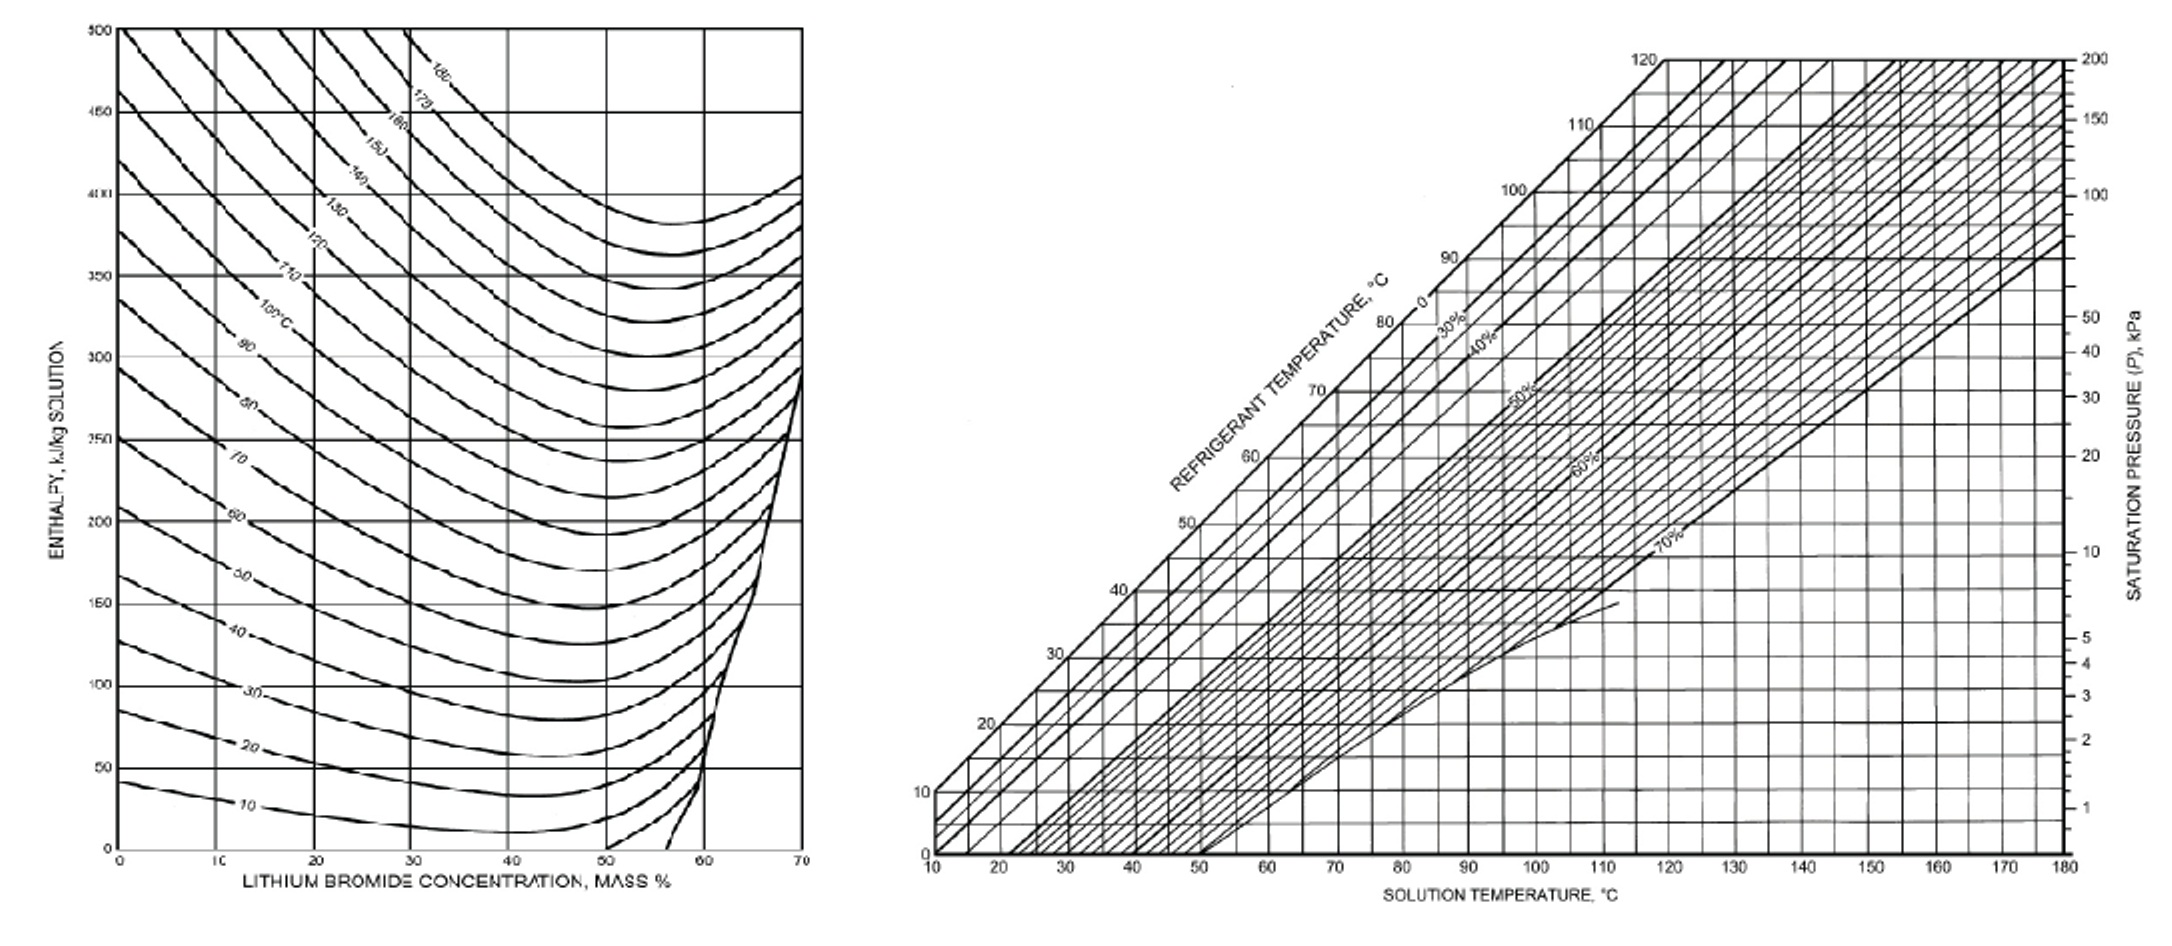 Calculation Of Enthalpy And Librh2o Concentration From